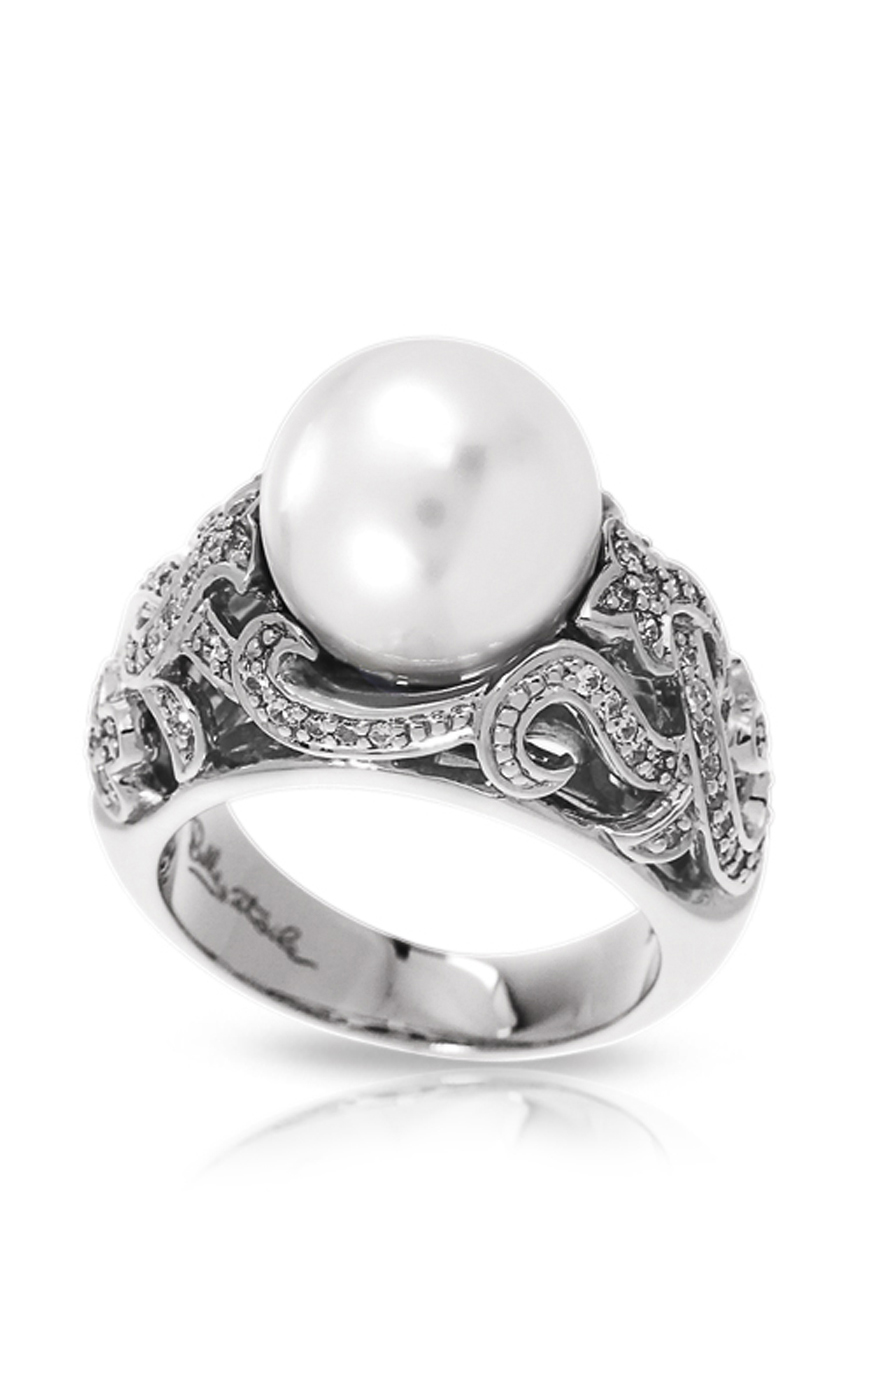 Belle Etoile Fiona White Ring 01031320102-5 product image